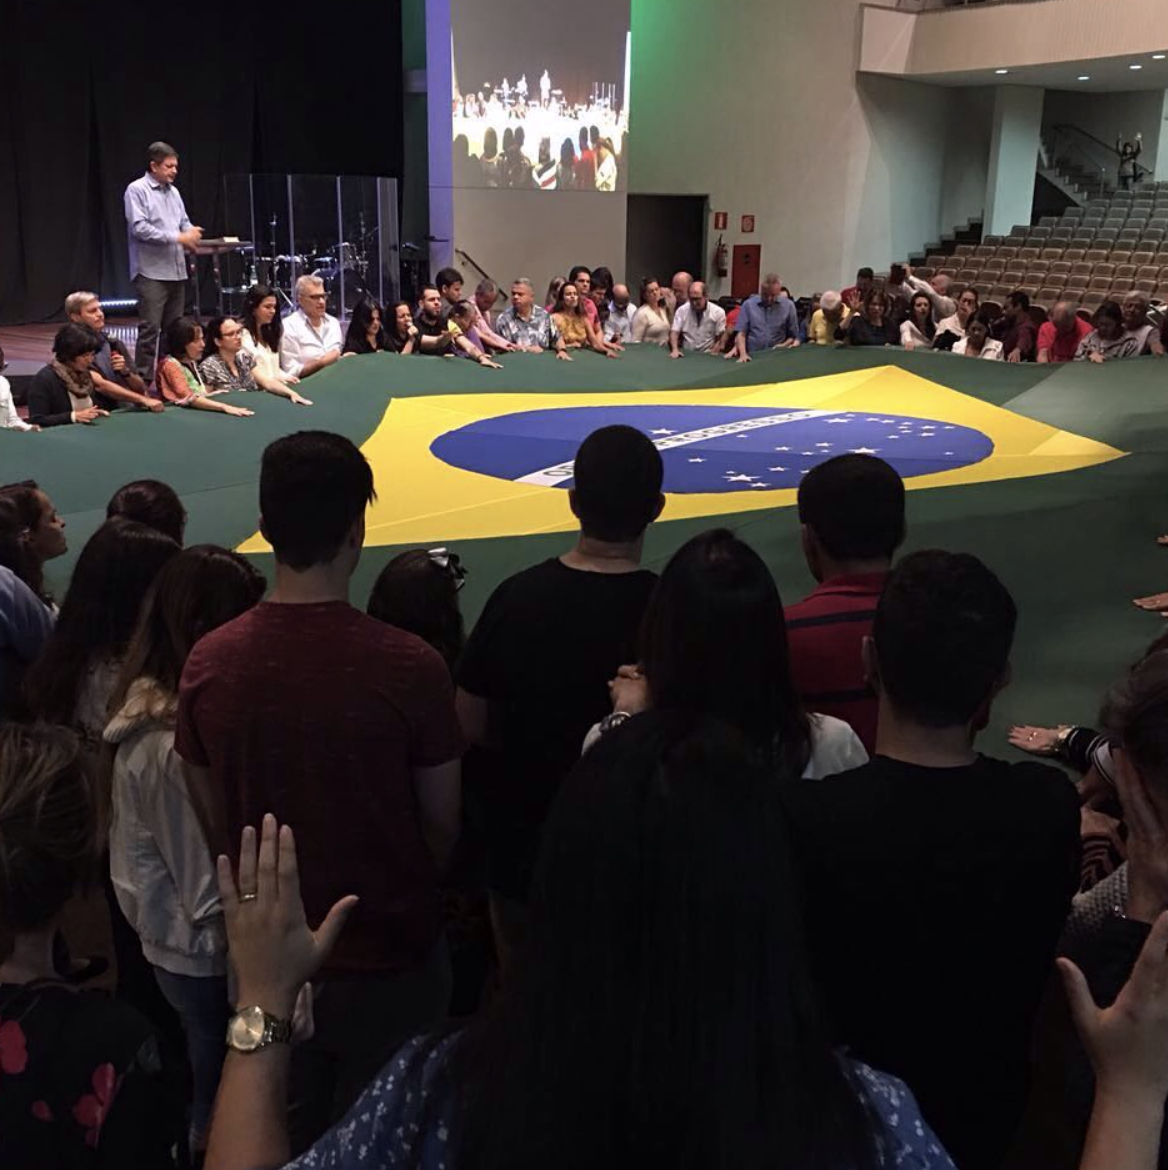 Prayer for Brazil